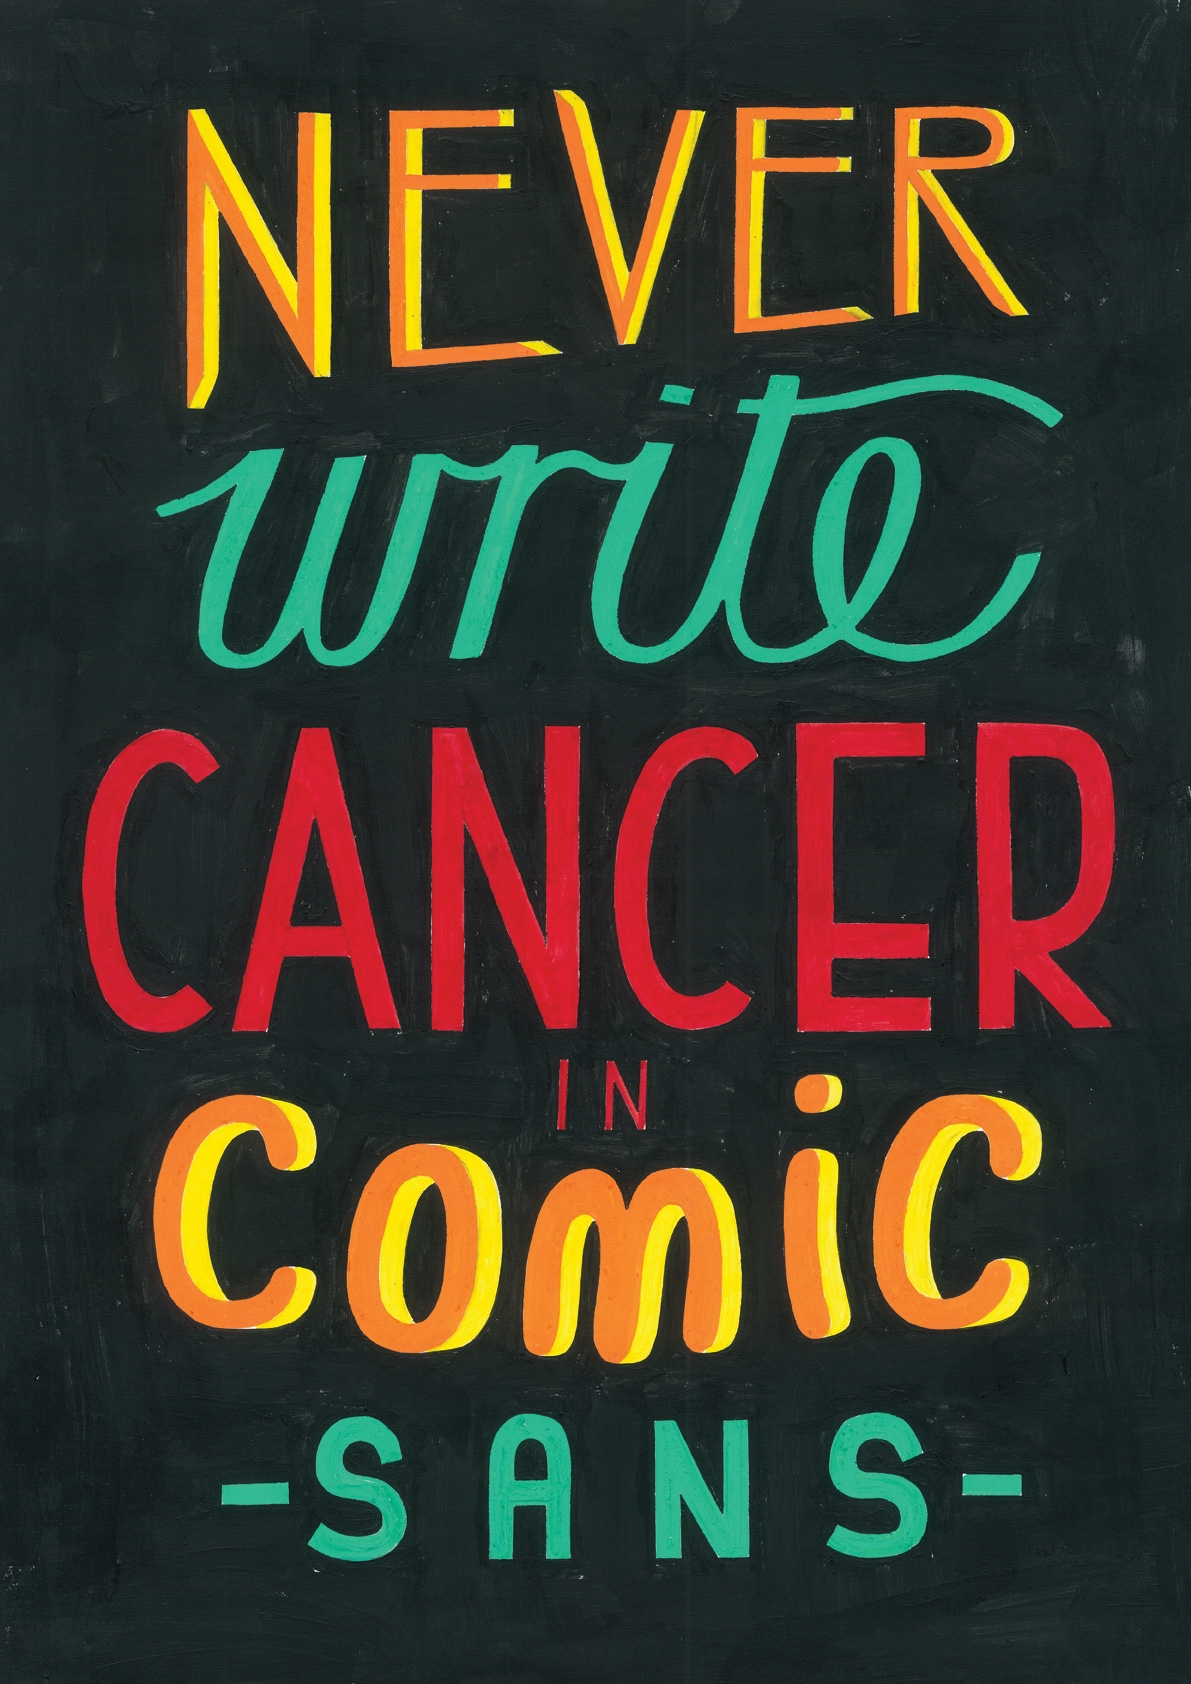 Contribution to  Comic Sans for Cancer  – a  Studio Theolin  project